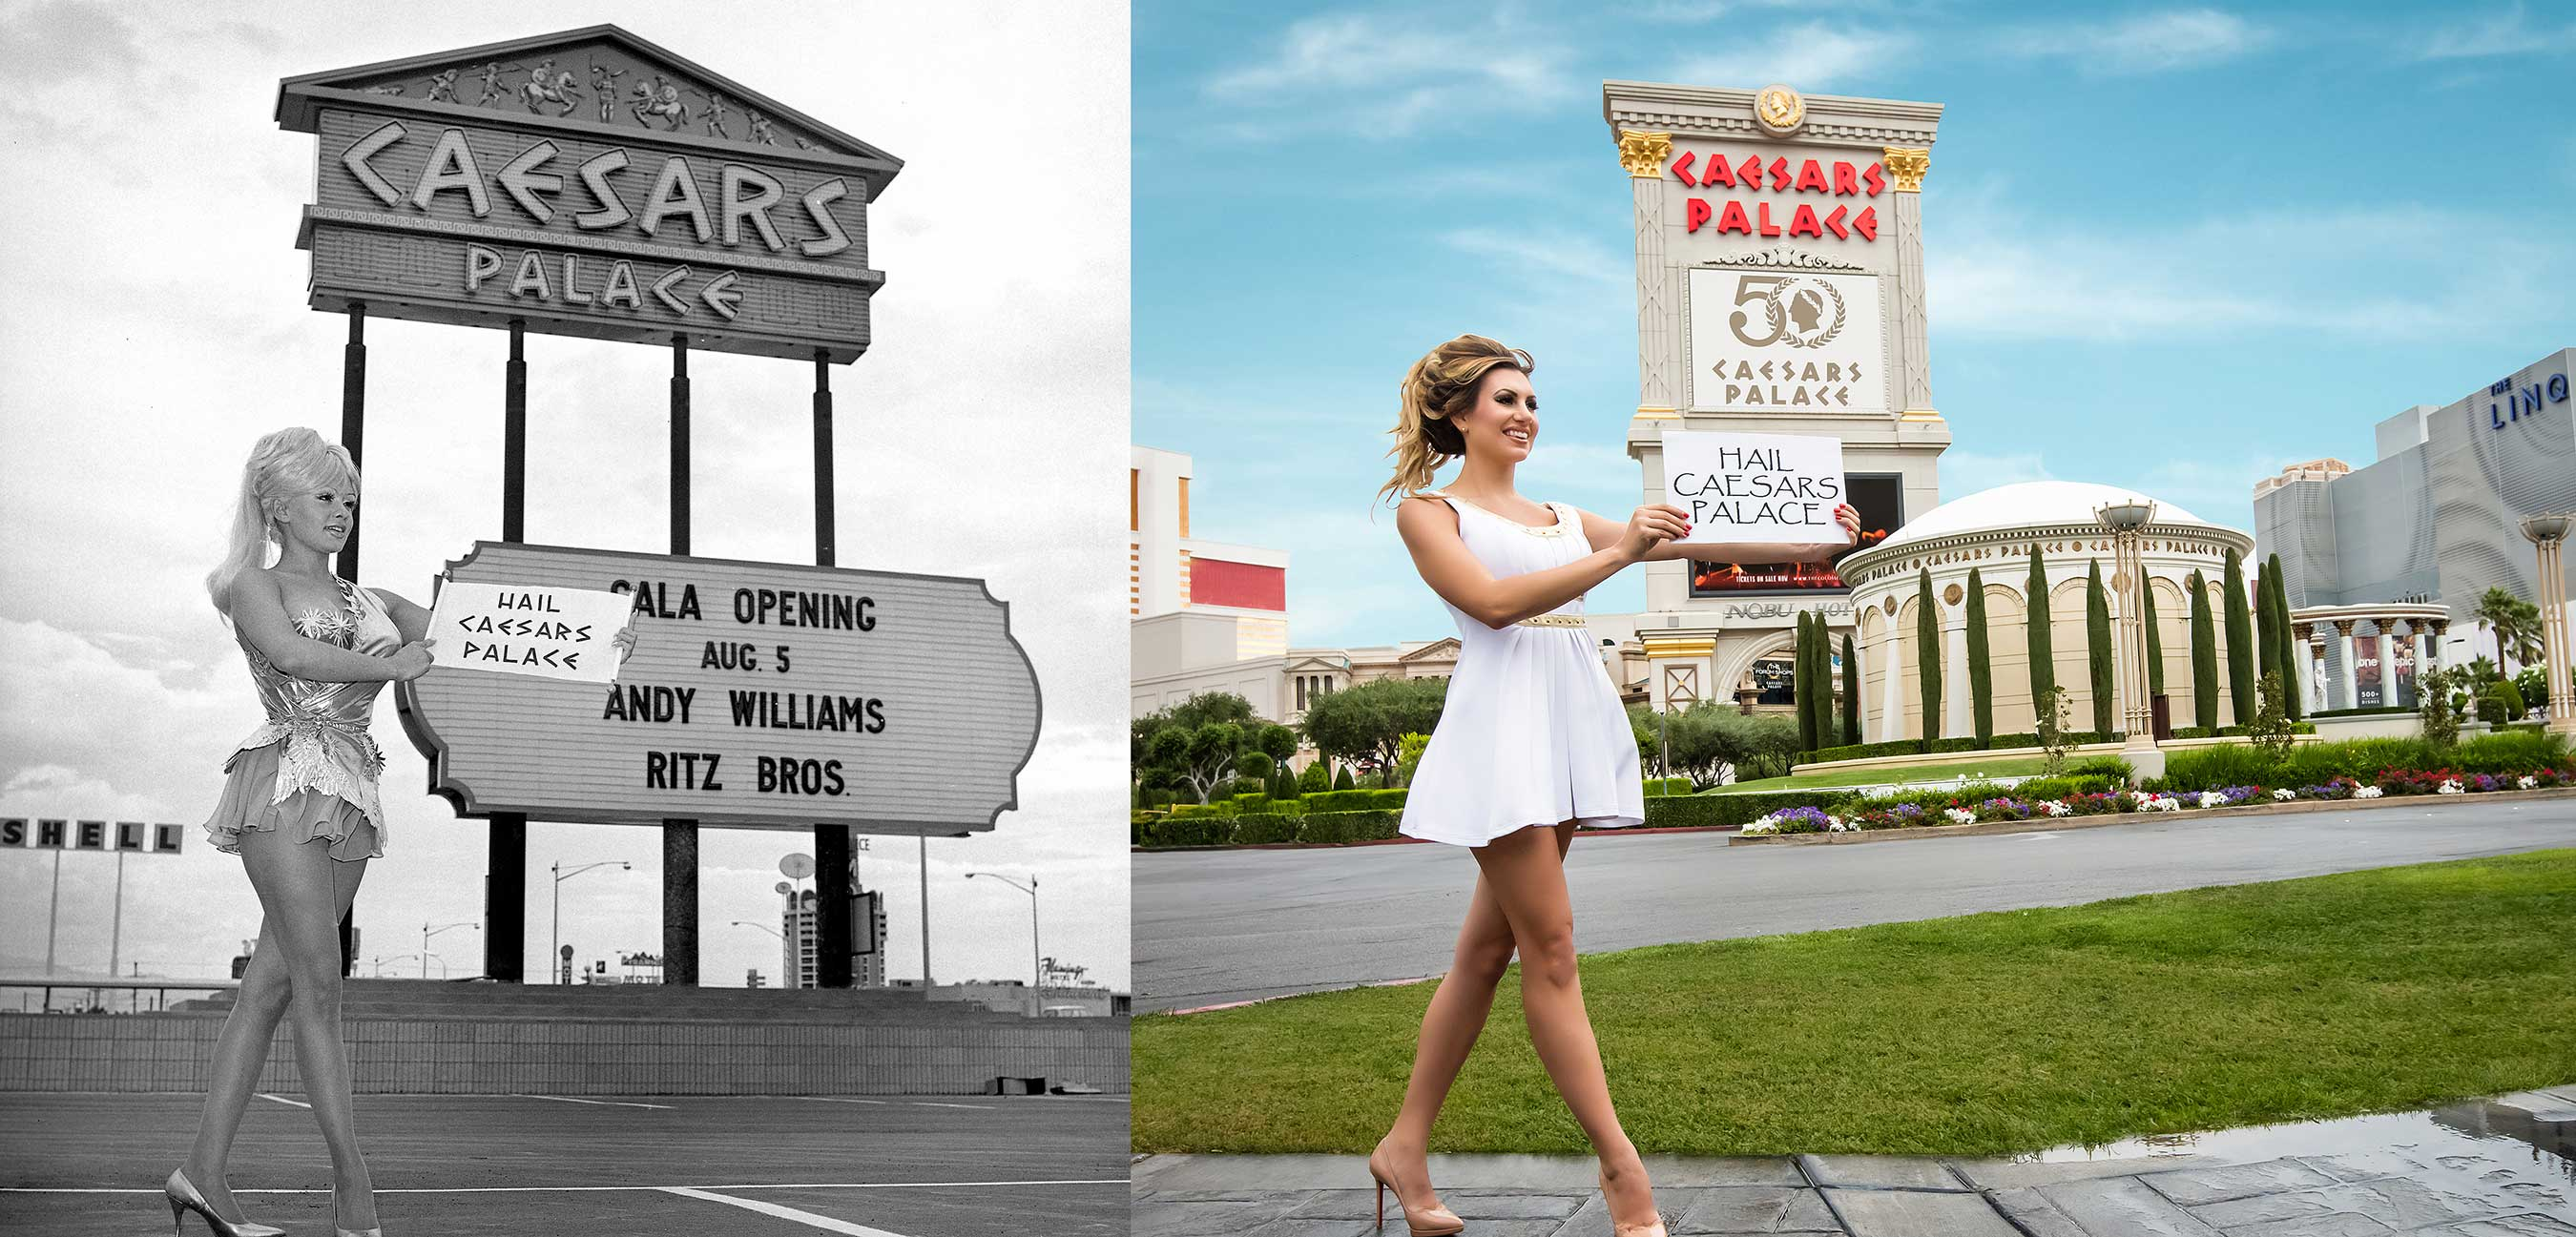 Caesars Palace Las Vegas Celebrates 50th Anniversary With Sweepstakes And Giveaways, Walking Tour And Photo Exhibit, Special Room Packages, Marquee Events And More